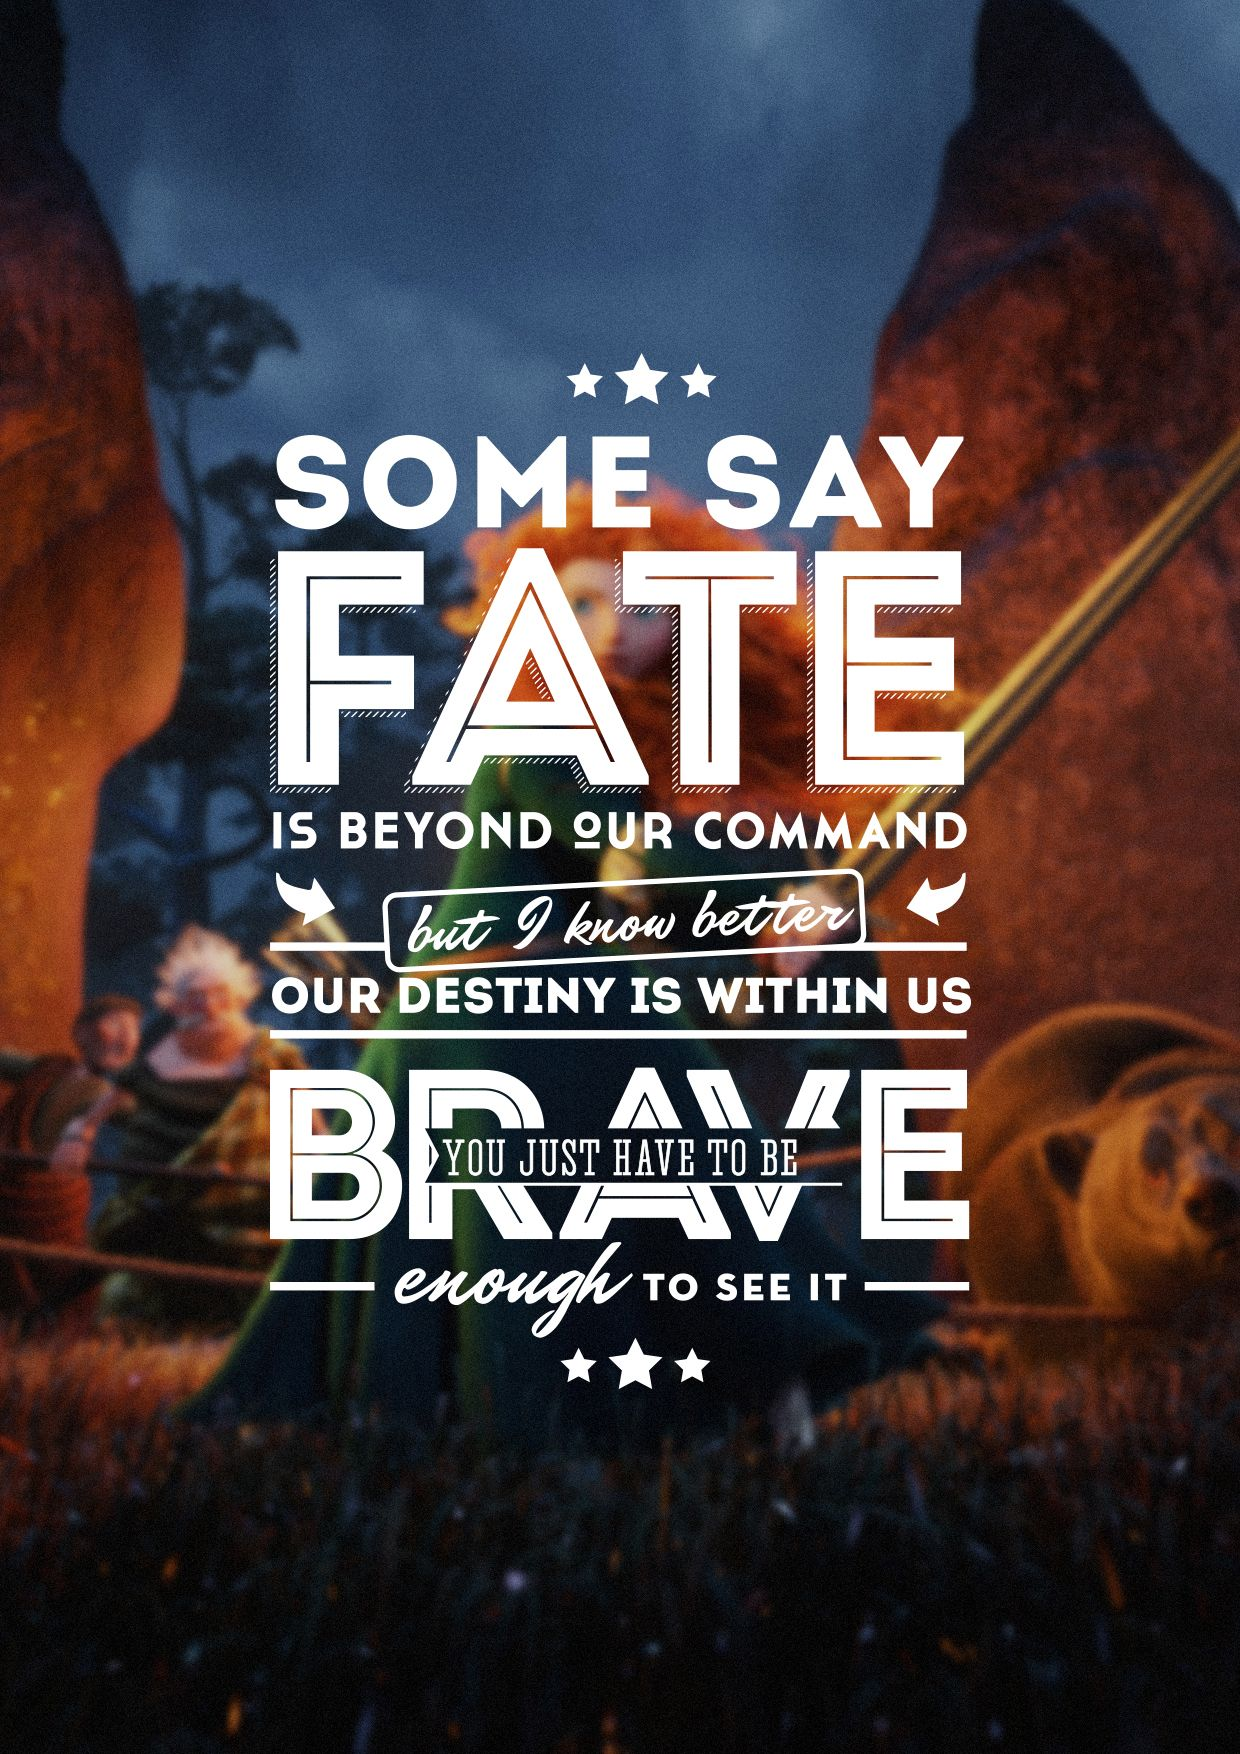 Pin By Dan Klimke On Stuff I Made Disney Quotes Brave Quotes Quotes Disney